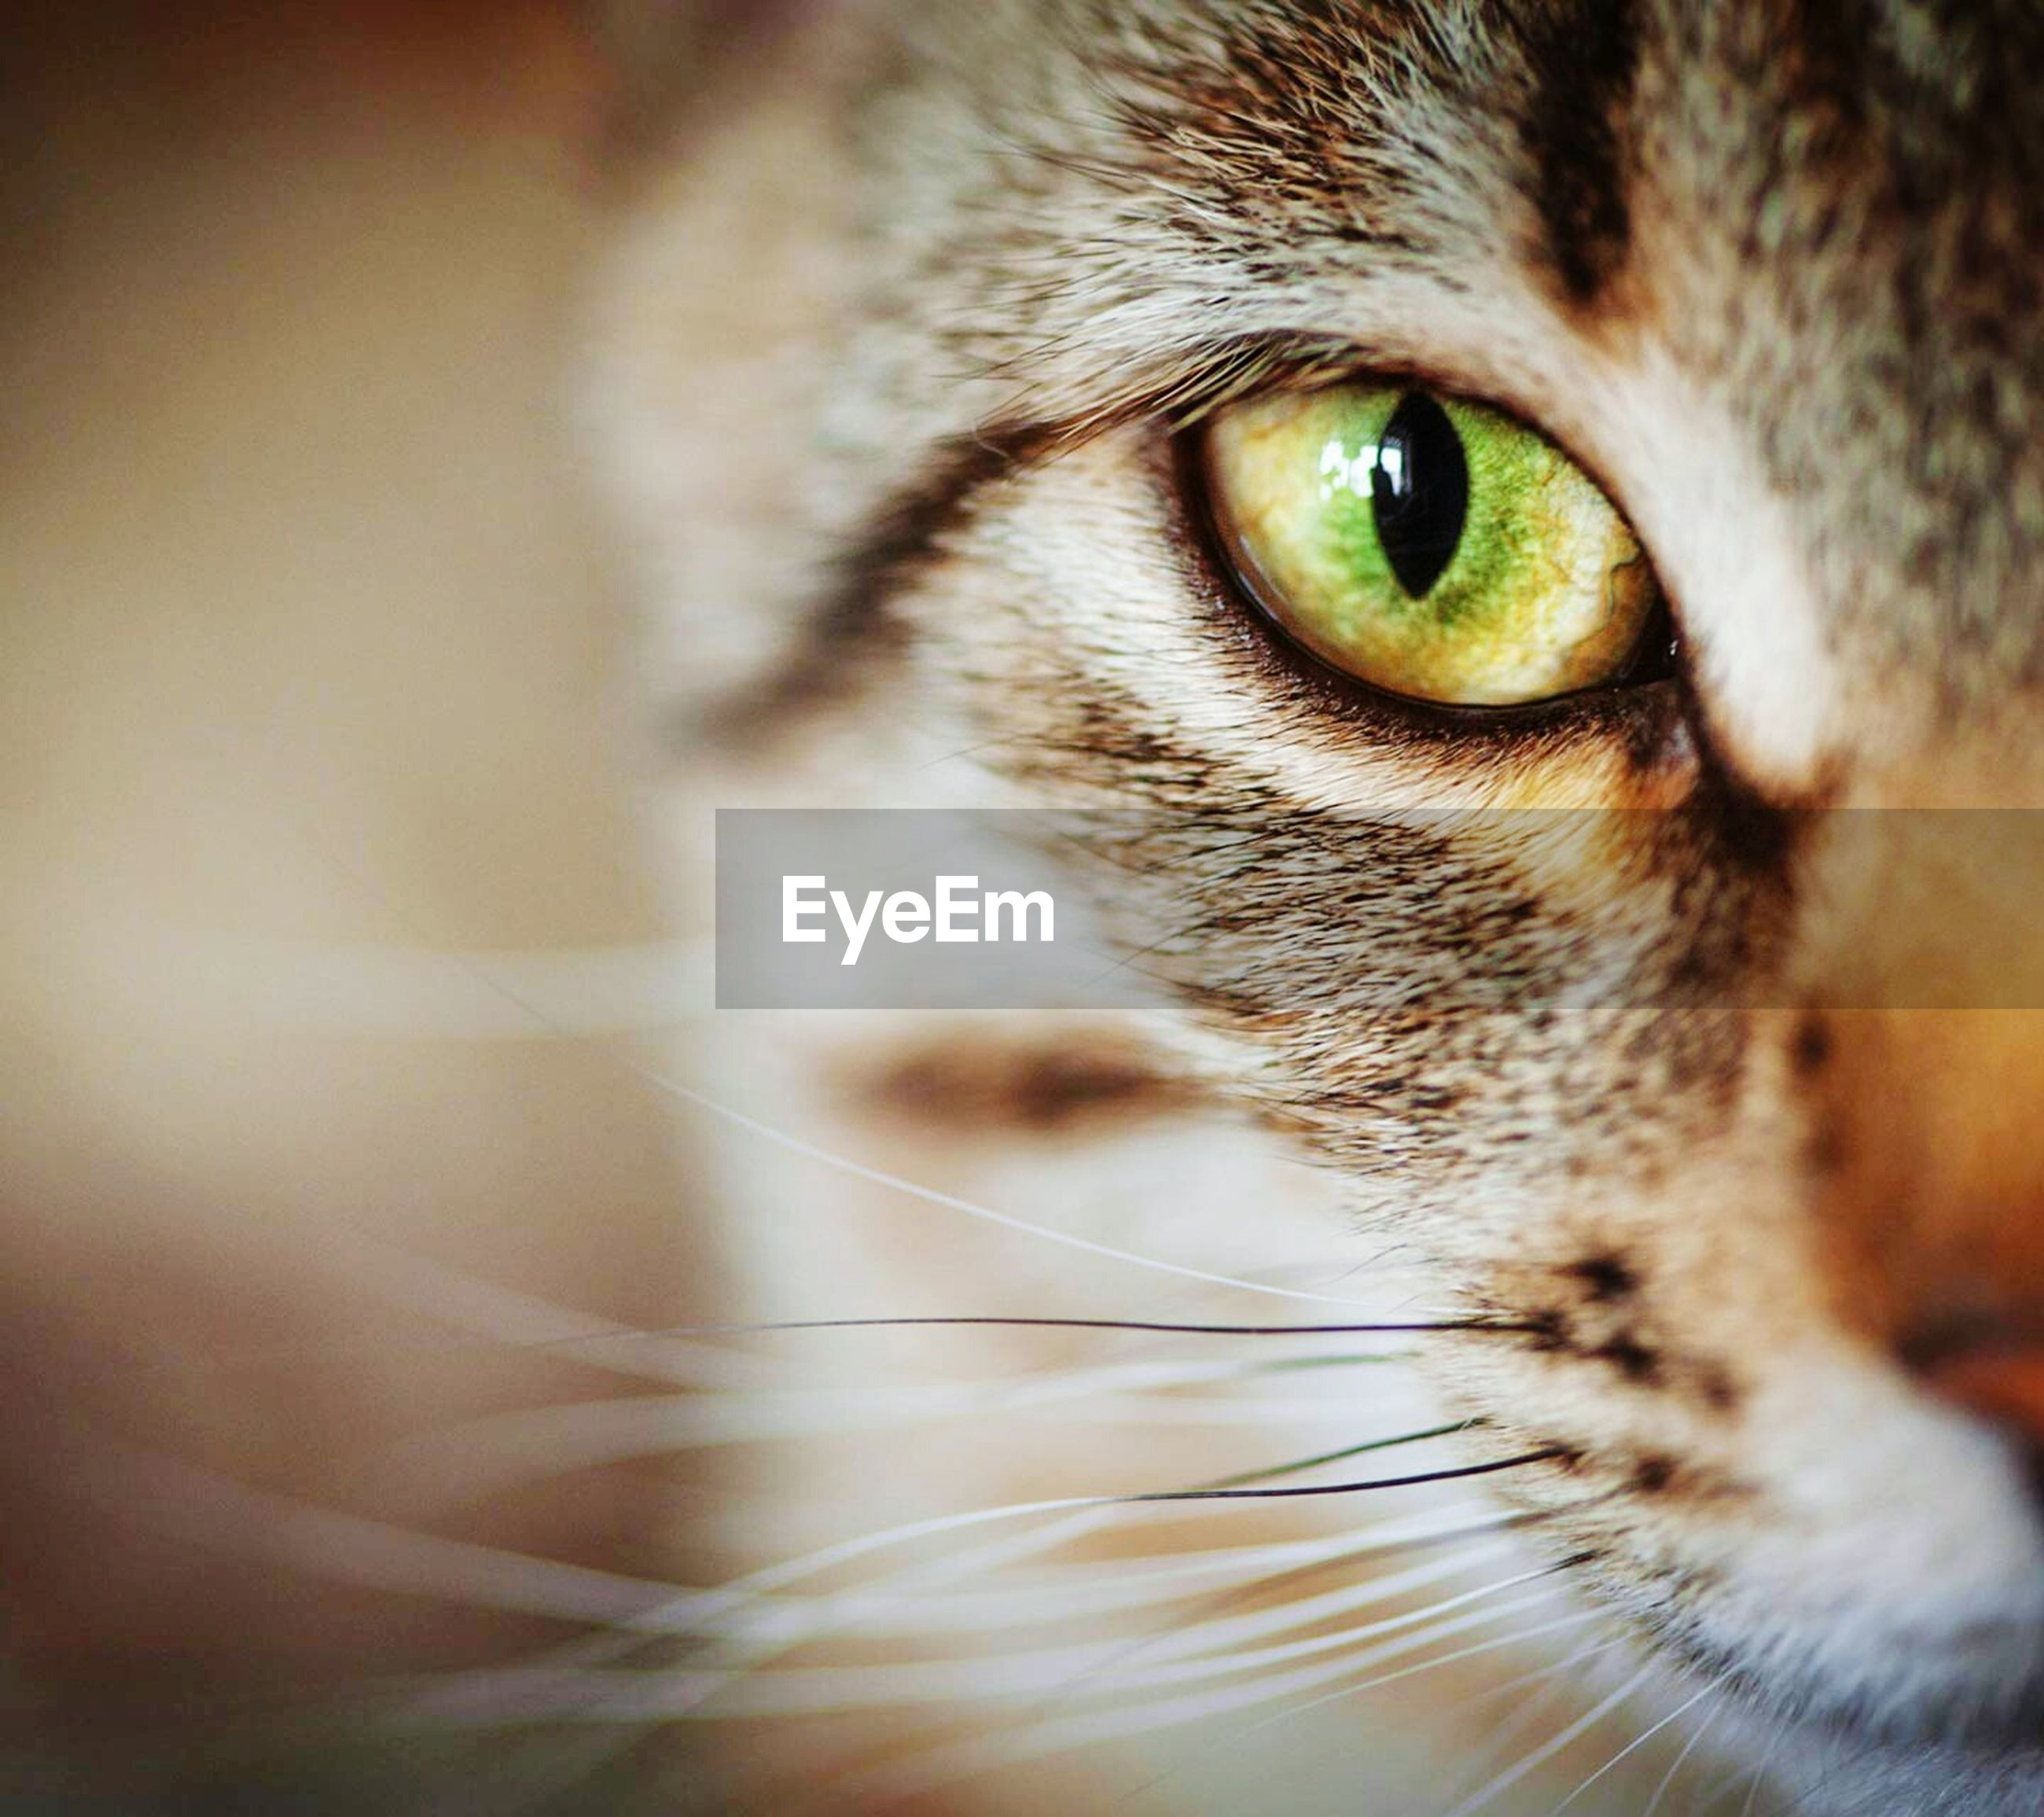 domestic cat, one animal, portrait, pets, domestic animals, animal themes, close-up, feline, looking at camera, whisker, animal head, mammal, focus on foreground, no people, indoors, day